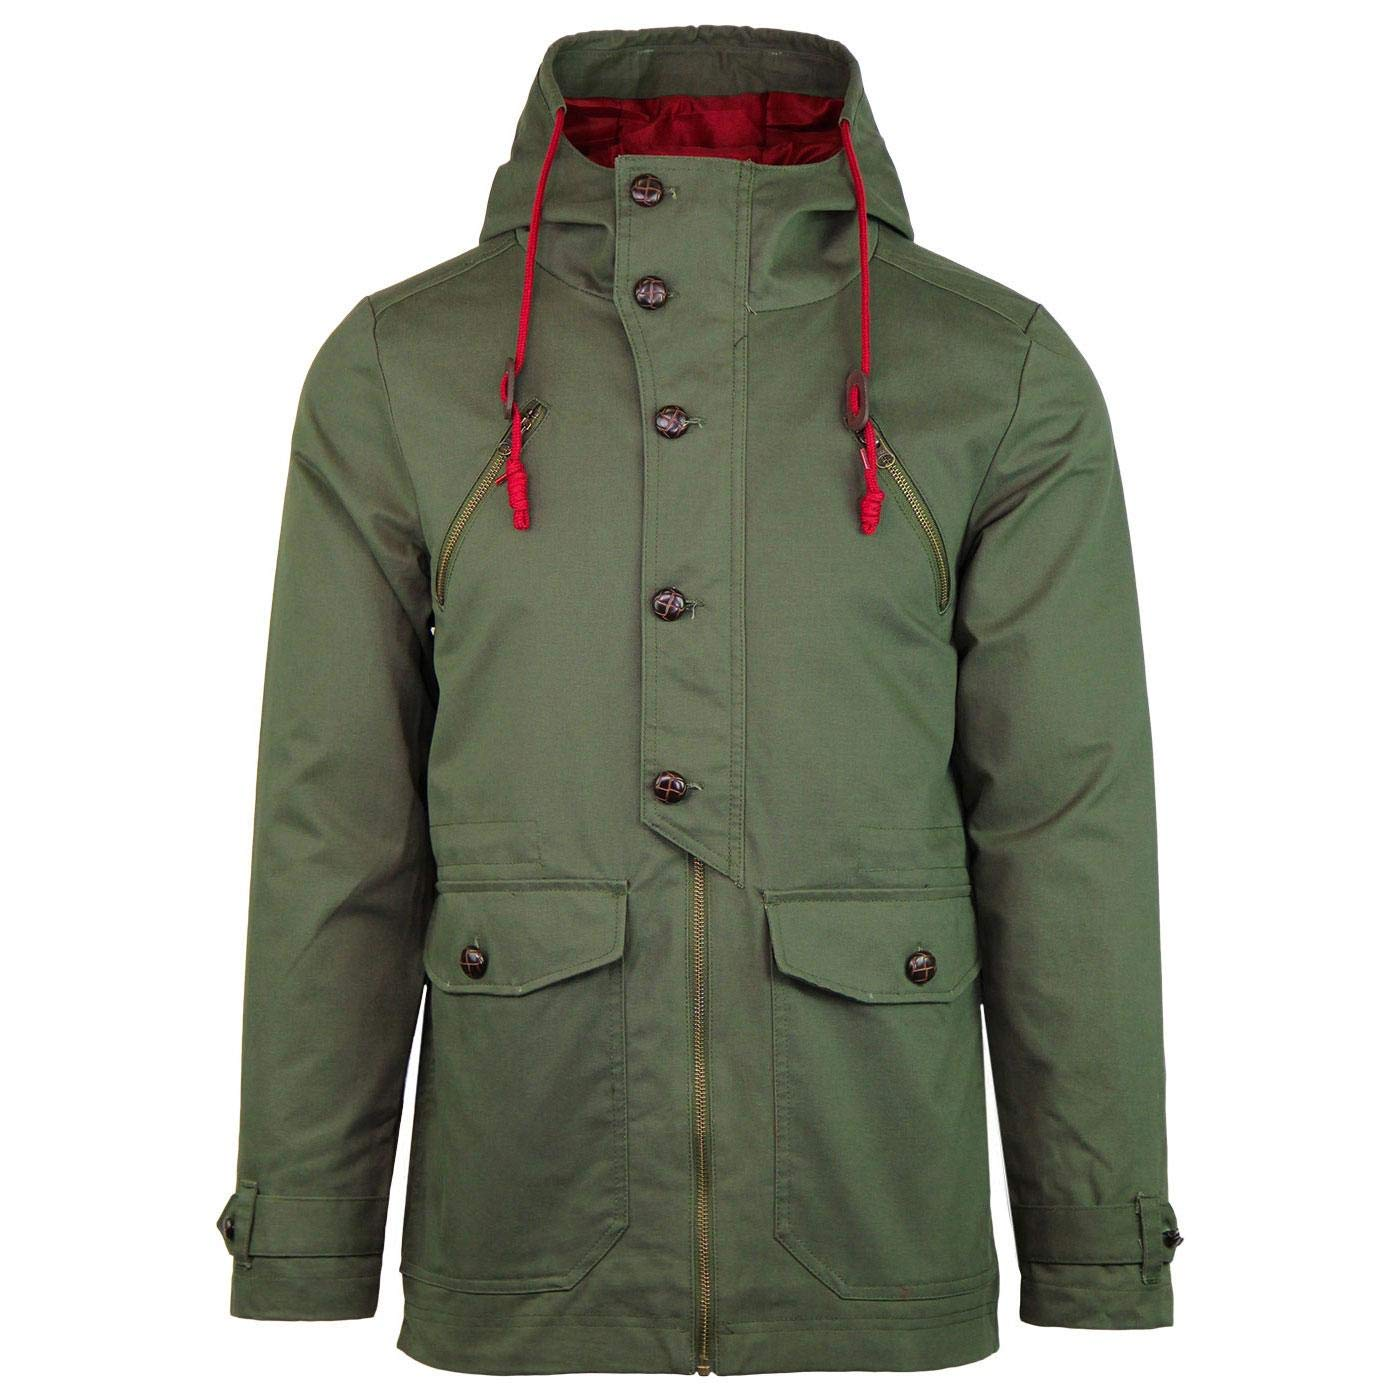 Men's Vintage Style Coats and Jackets Madcap England Alfie Mens Mod Hooded Fishtail Parka Jacket in Olive £89.99 AT vintagedancer.com